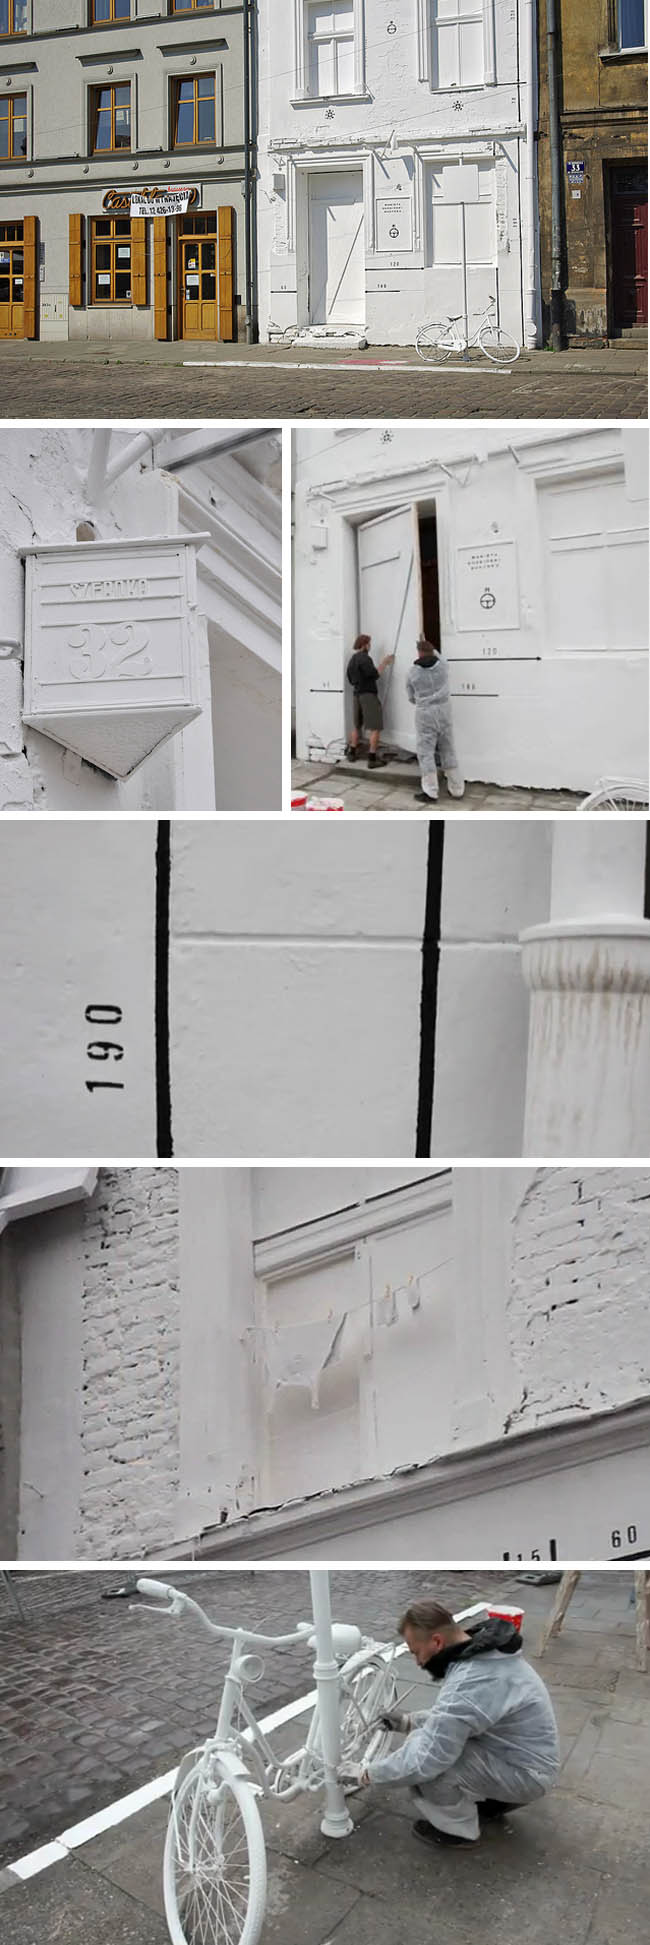 Street Art in Poland, Demolition Project part of Artboom Festival, Robert Kusmirowski